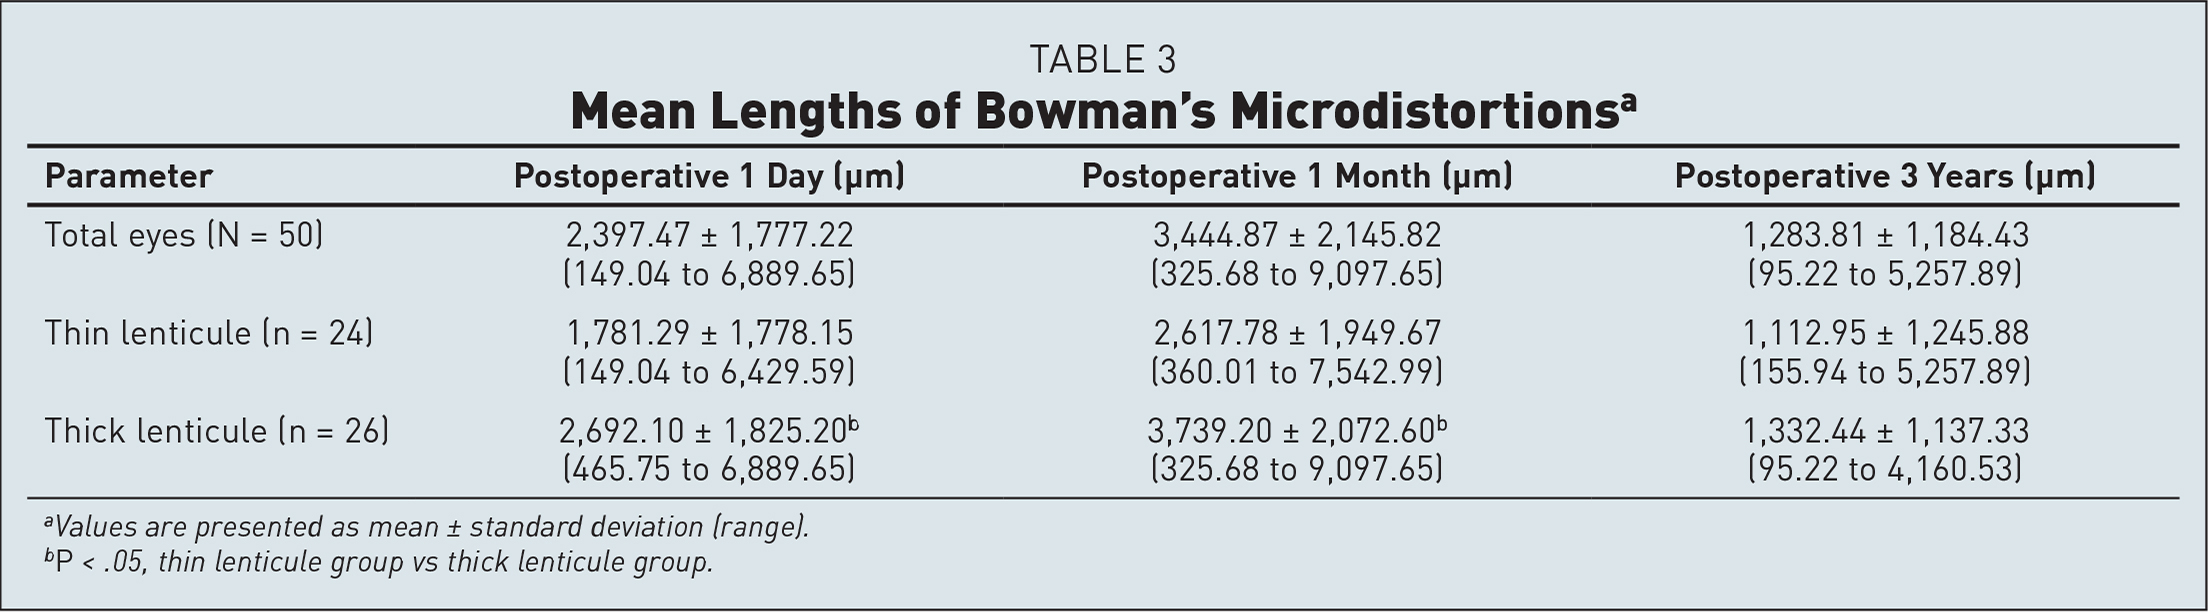 Mean Lengths of Bowman's Microdistortionsa